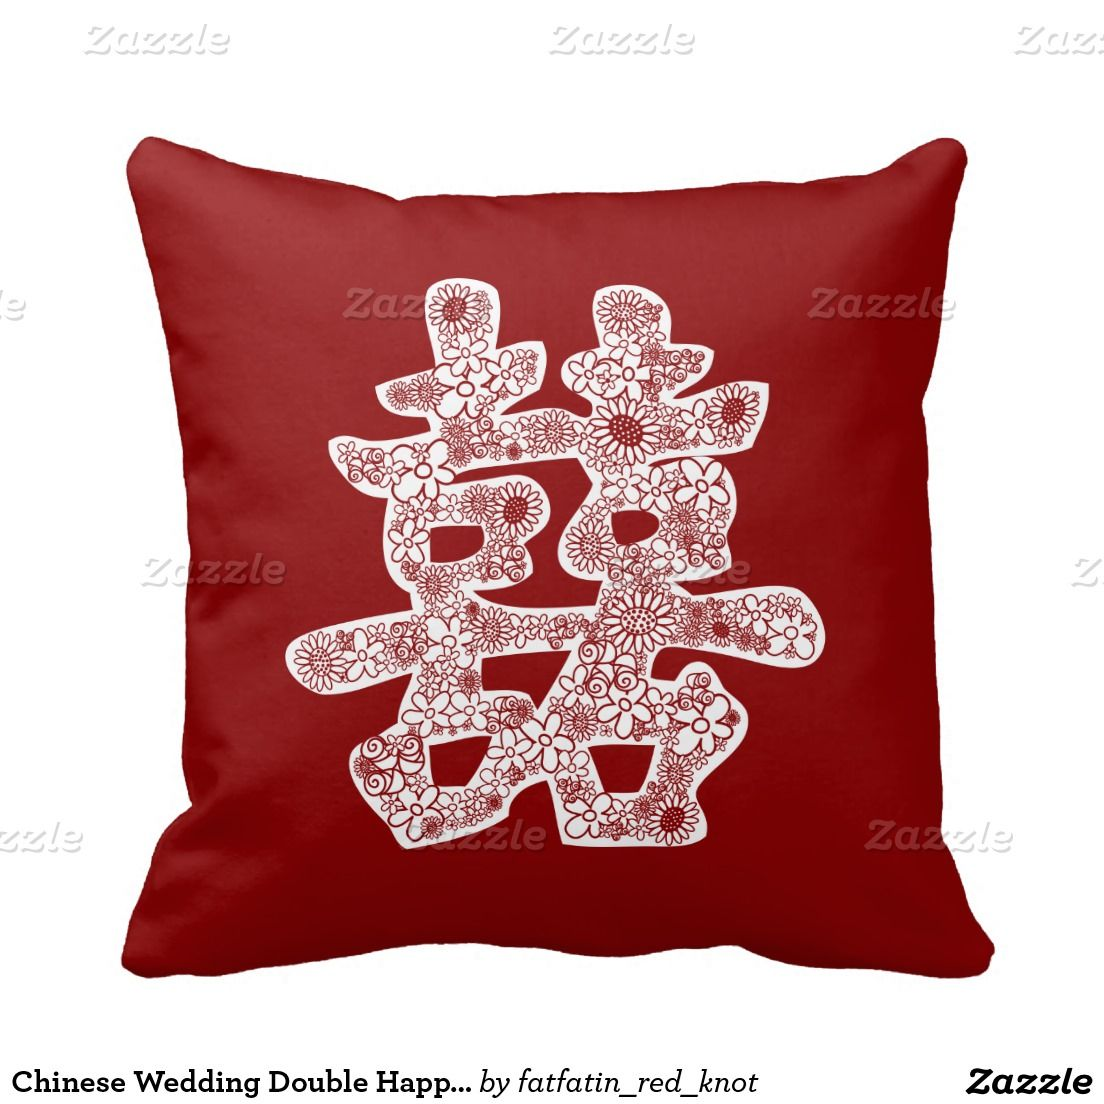 Chinese Wedding Double Happiness Floral Paper Cut Throw Pillows ...